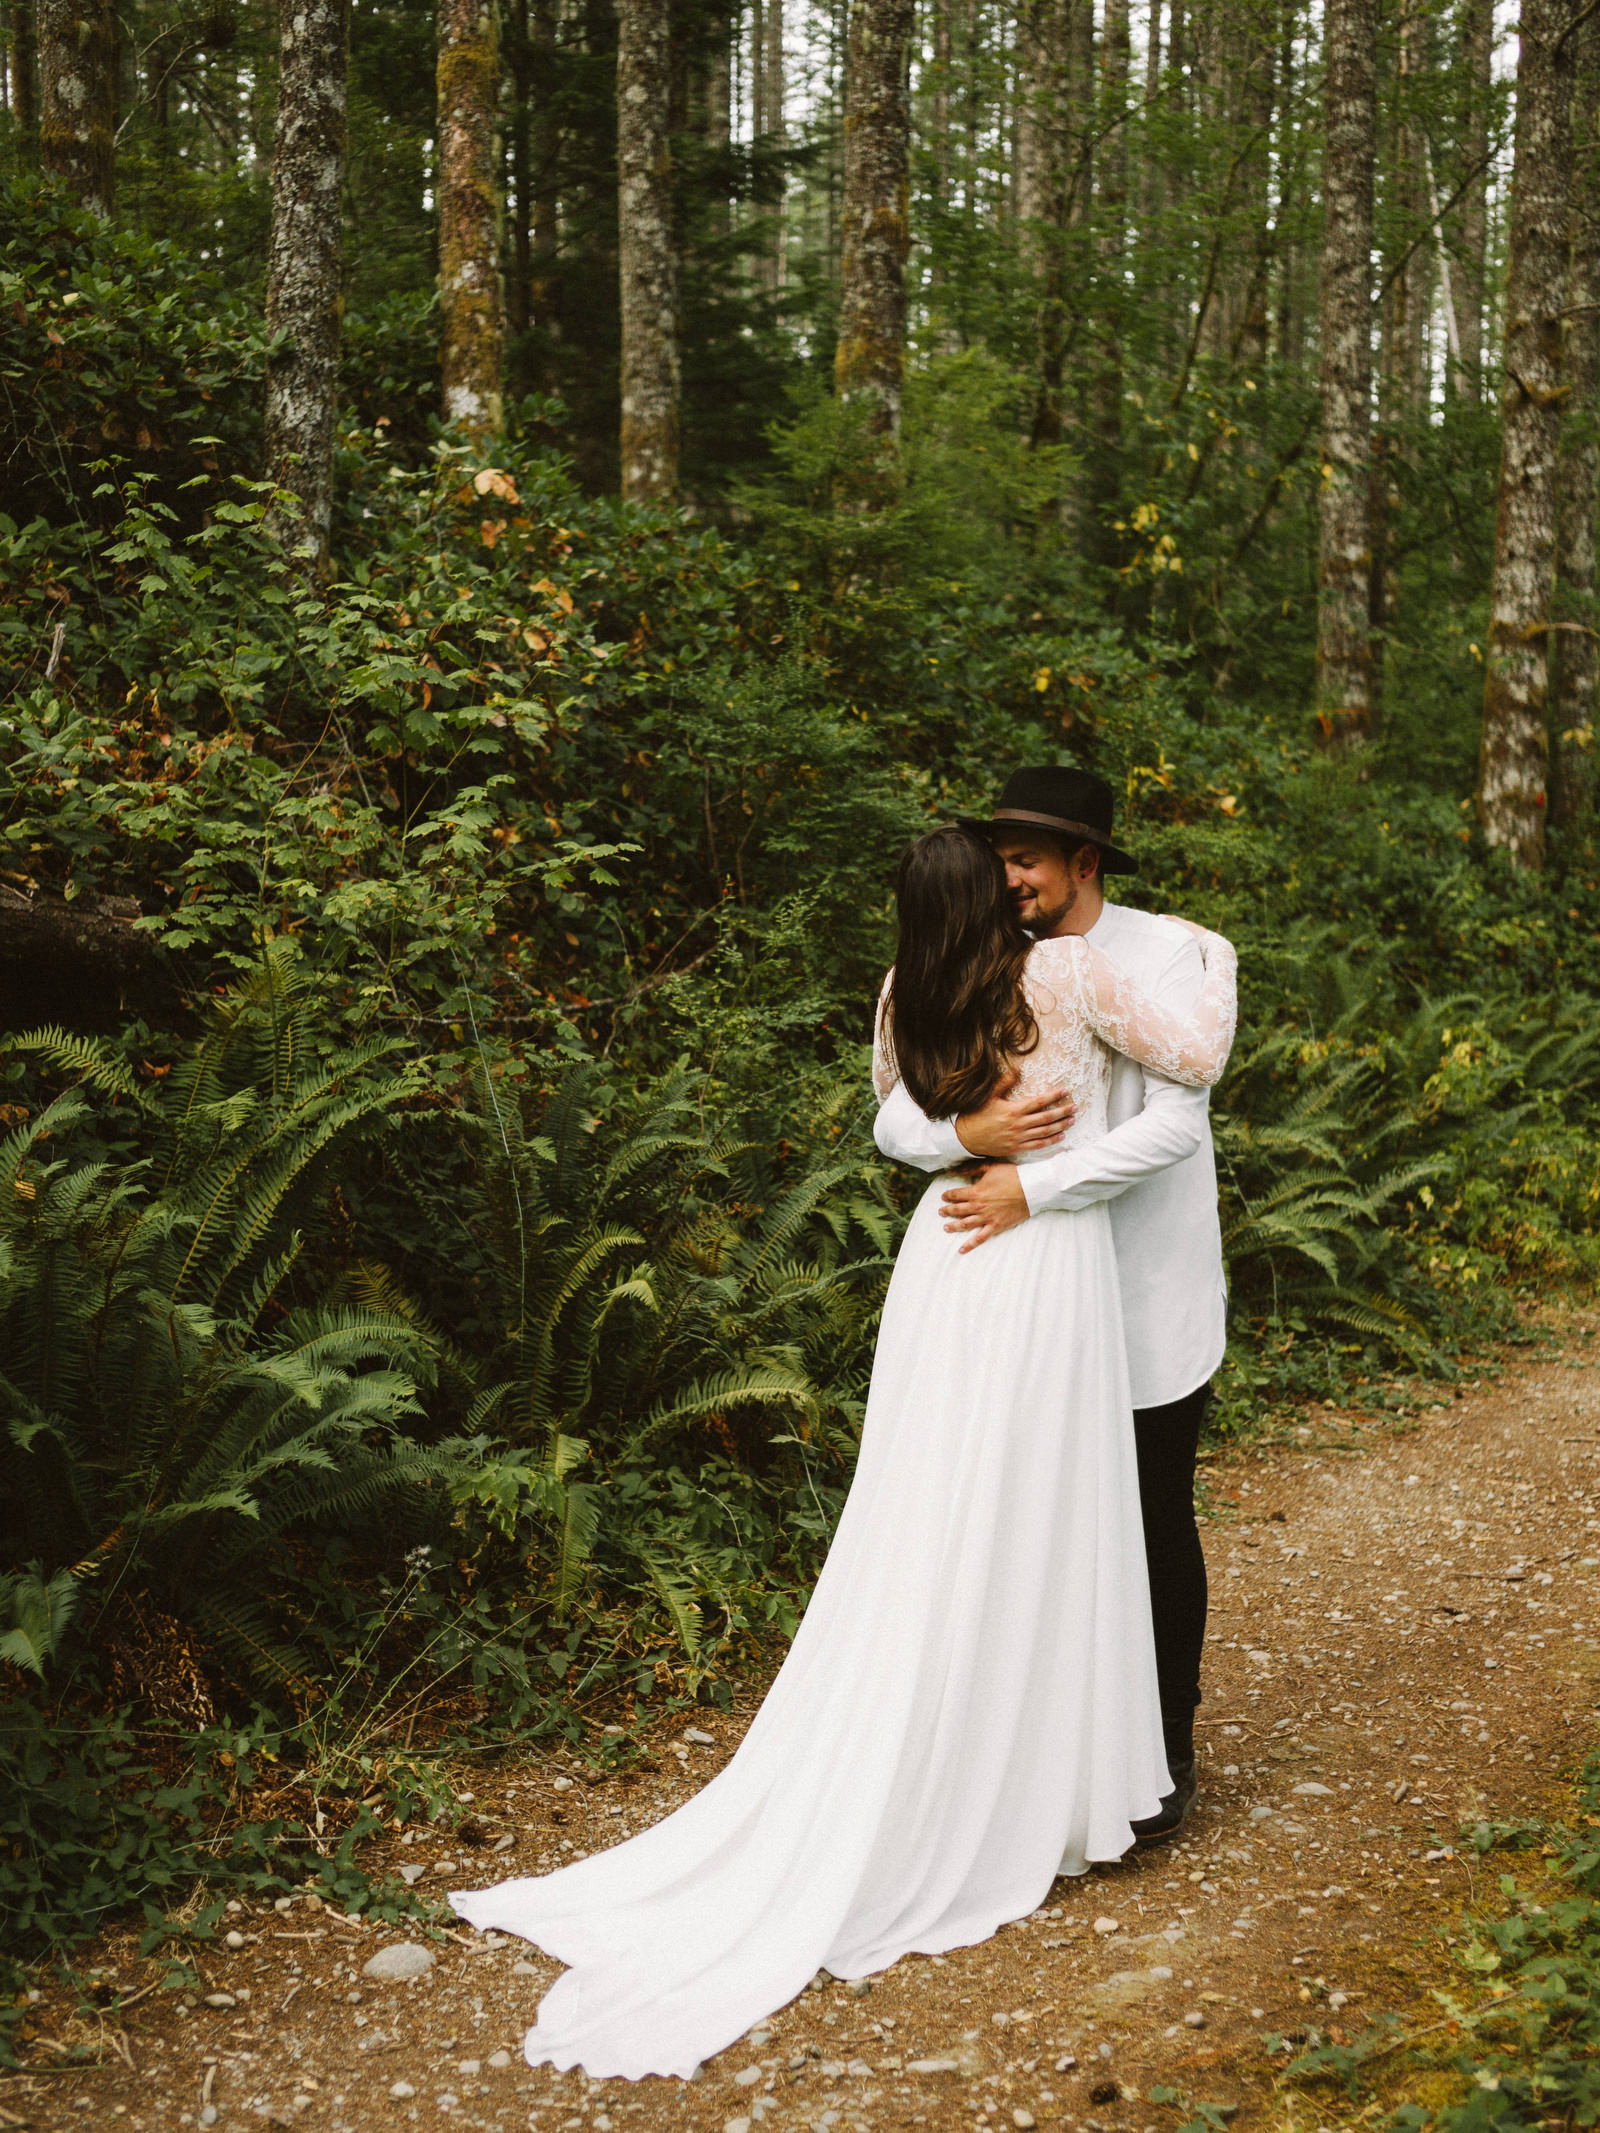 athena-and-camron-seattle-elopement-wedding-benj-haisch-rattlesnake-lake-christian-couple-goals10